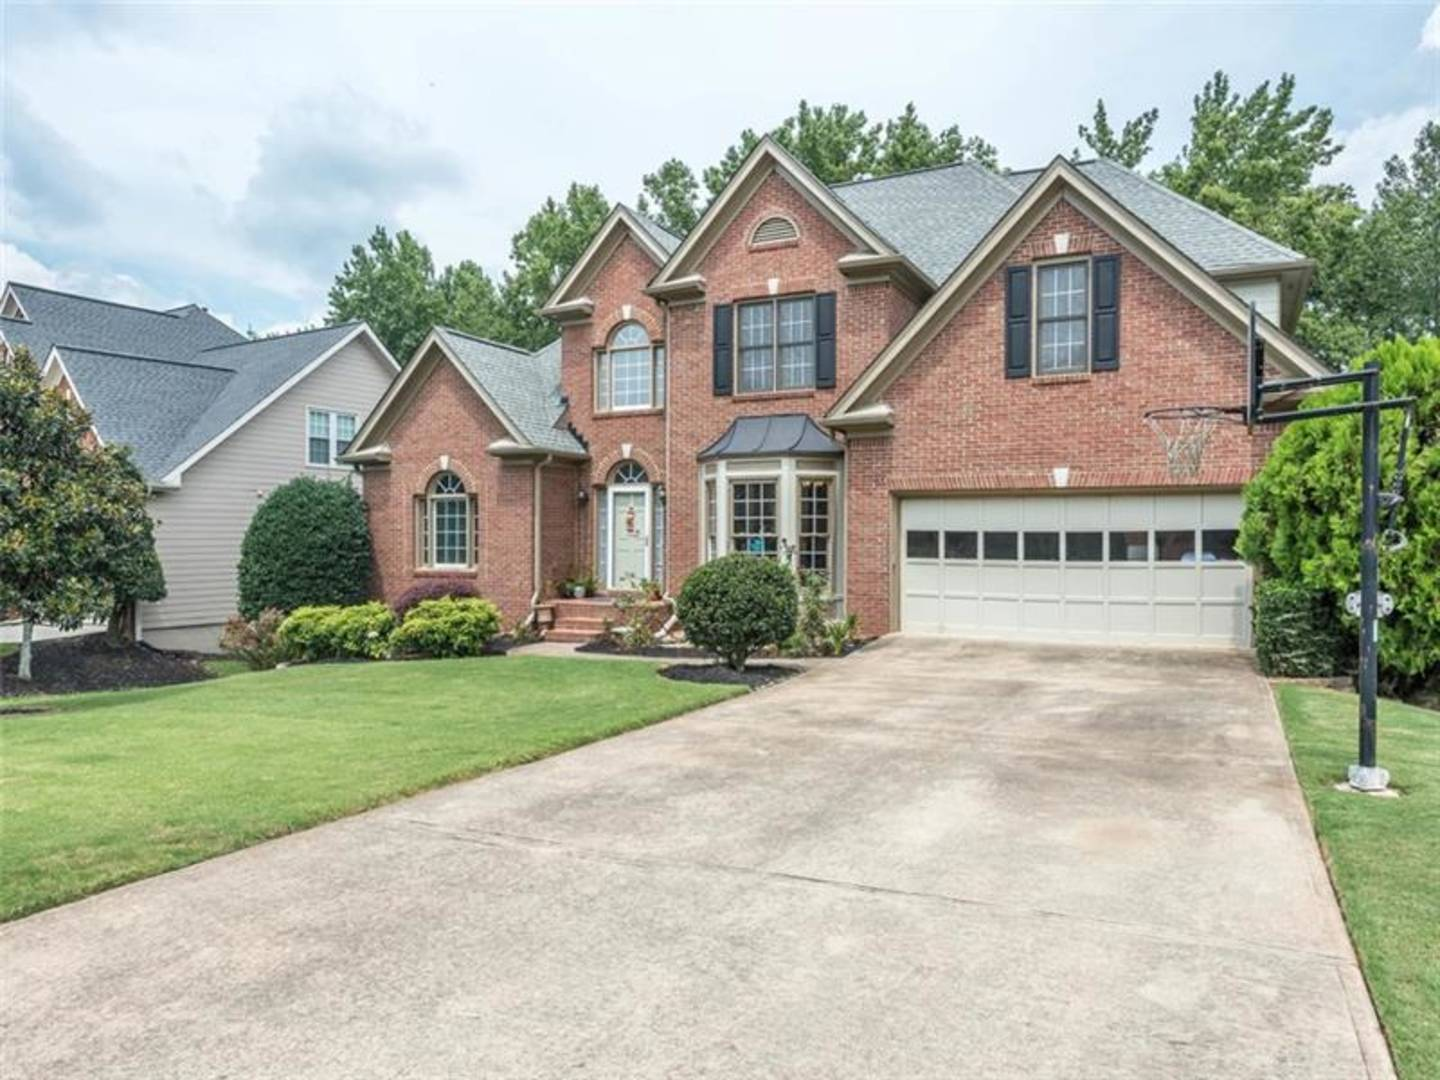 1040 Wilde Run Ct Rosewll, GA 30075